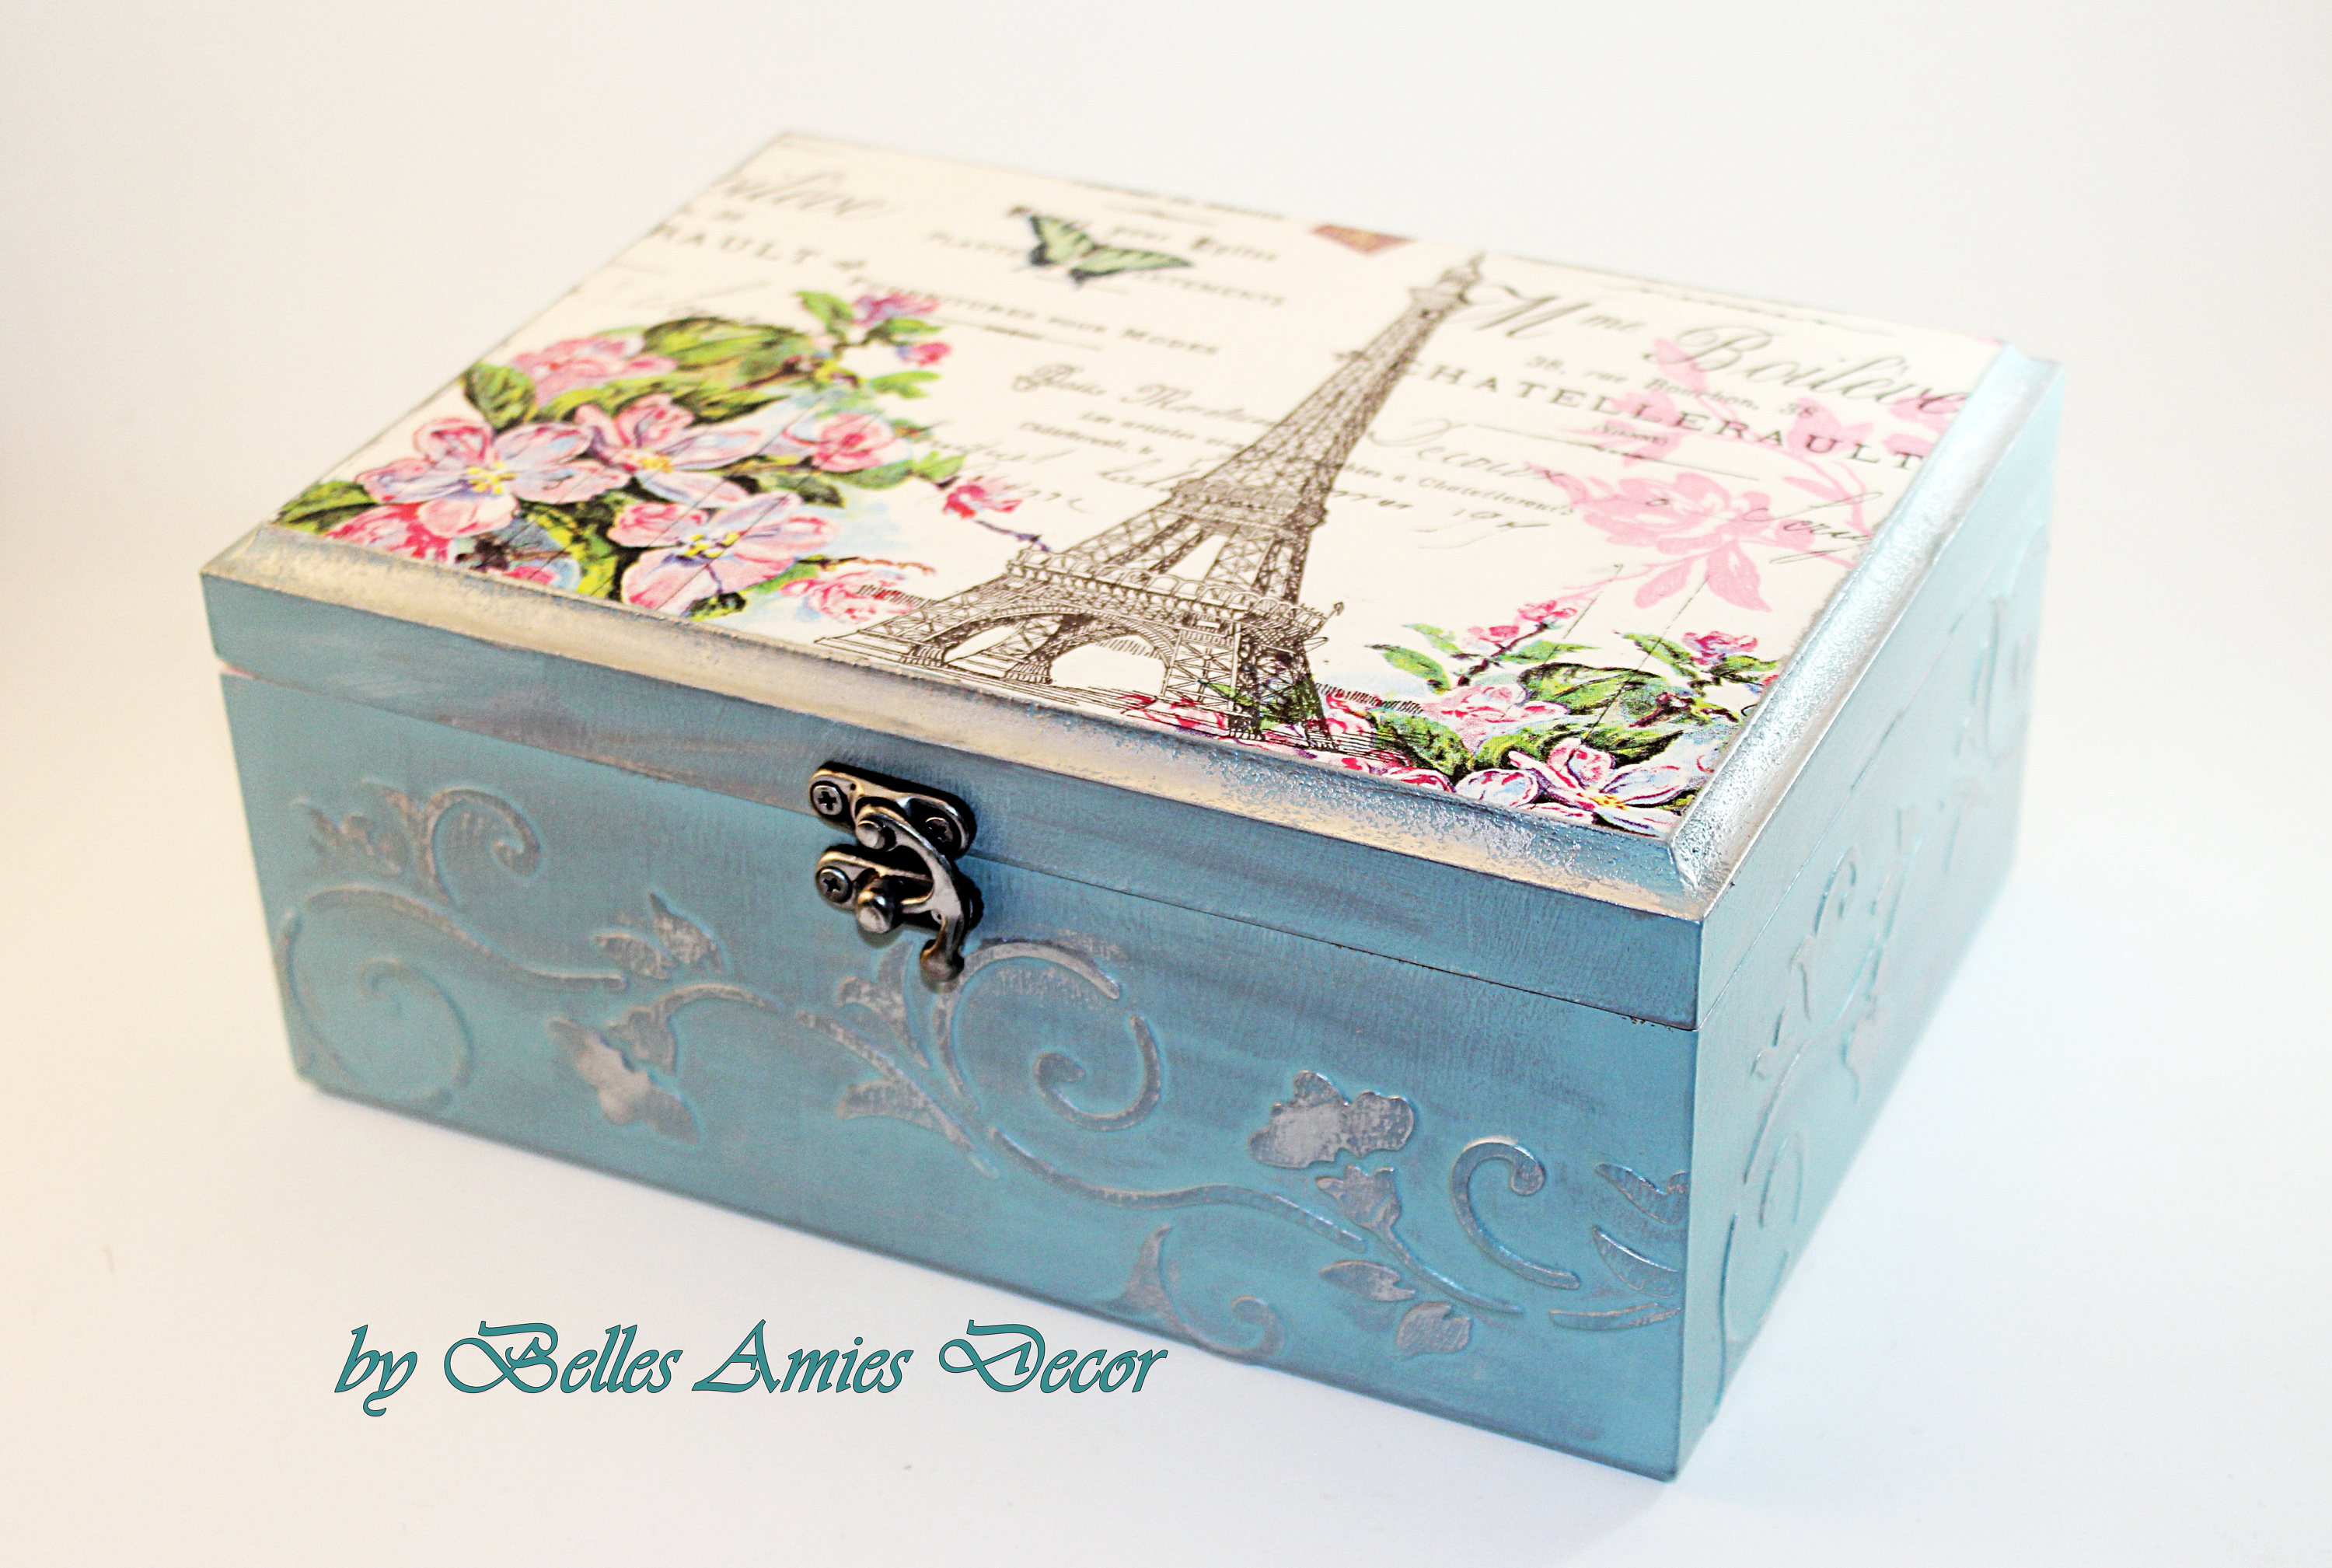 Tea box Paris jewelry box gift for girl womens gifts Paris